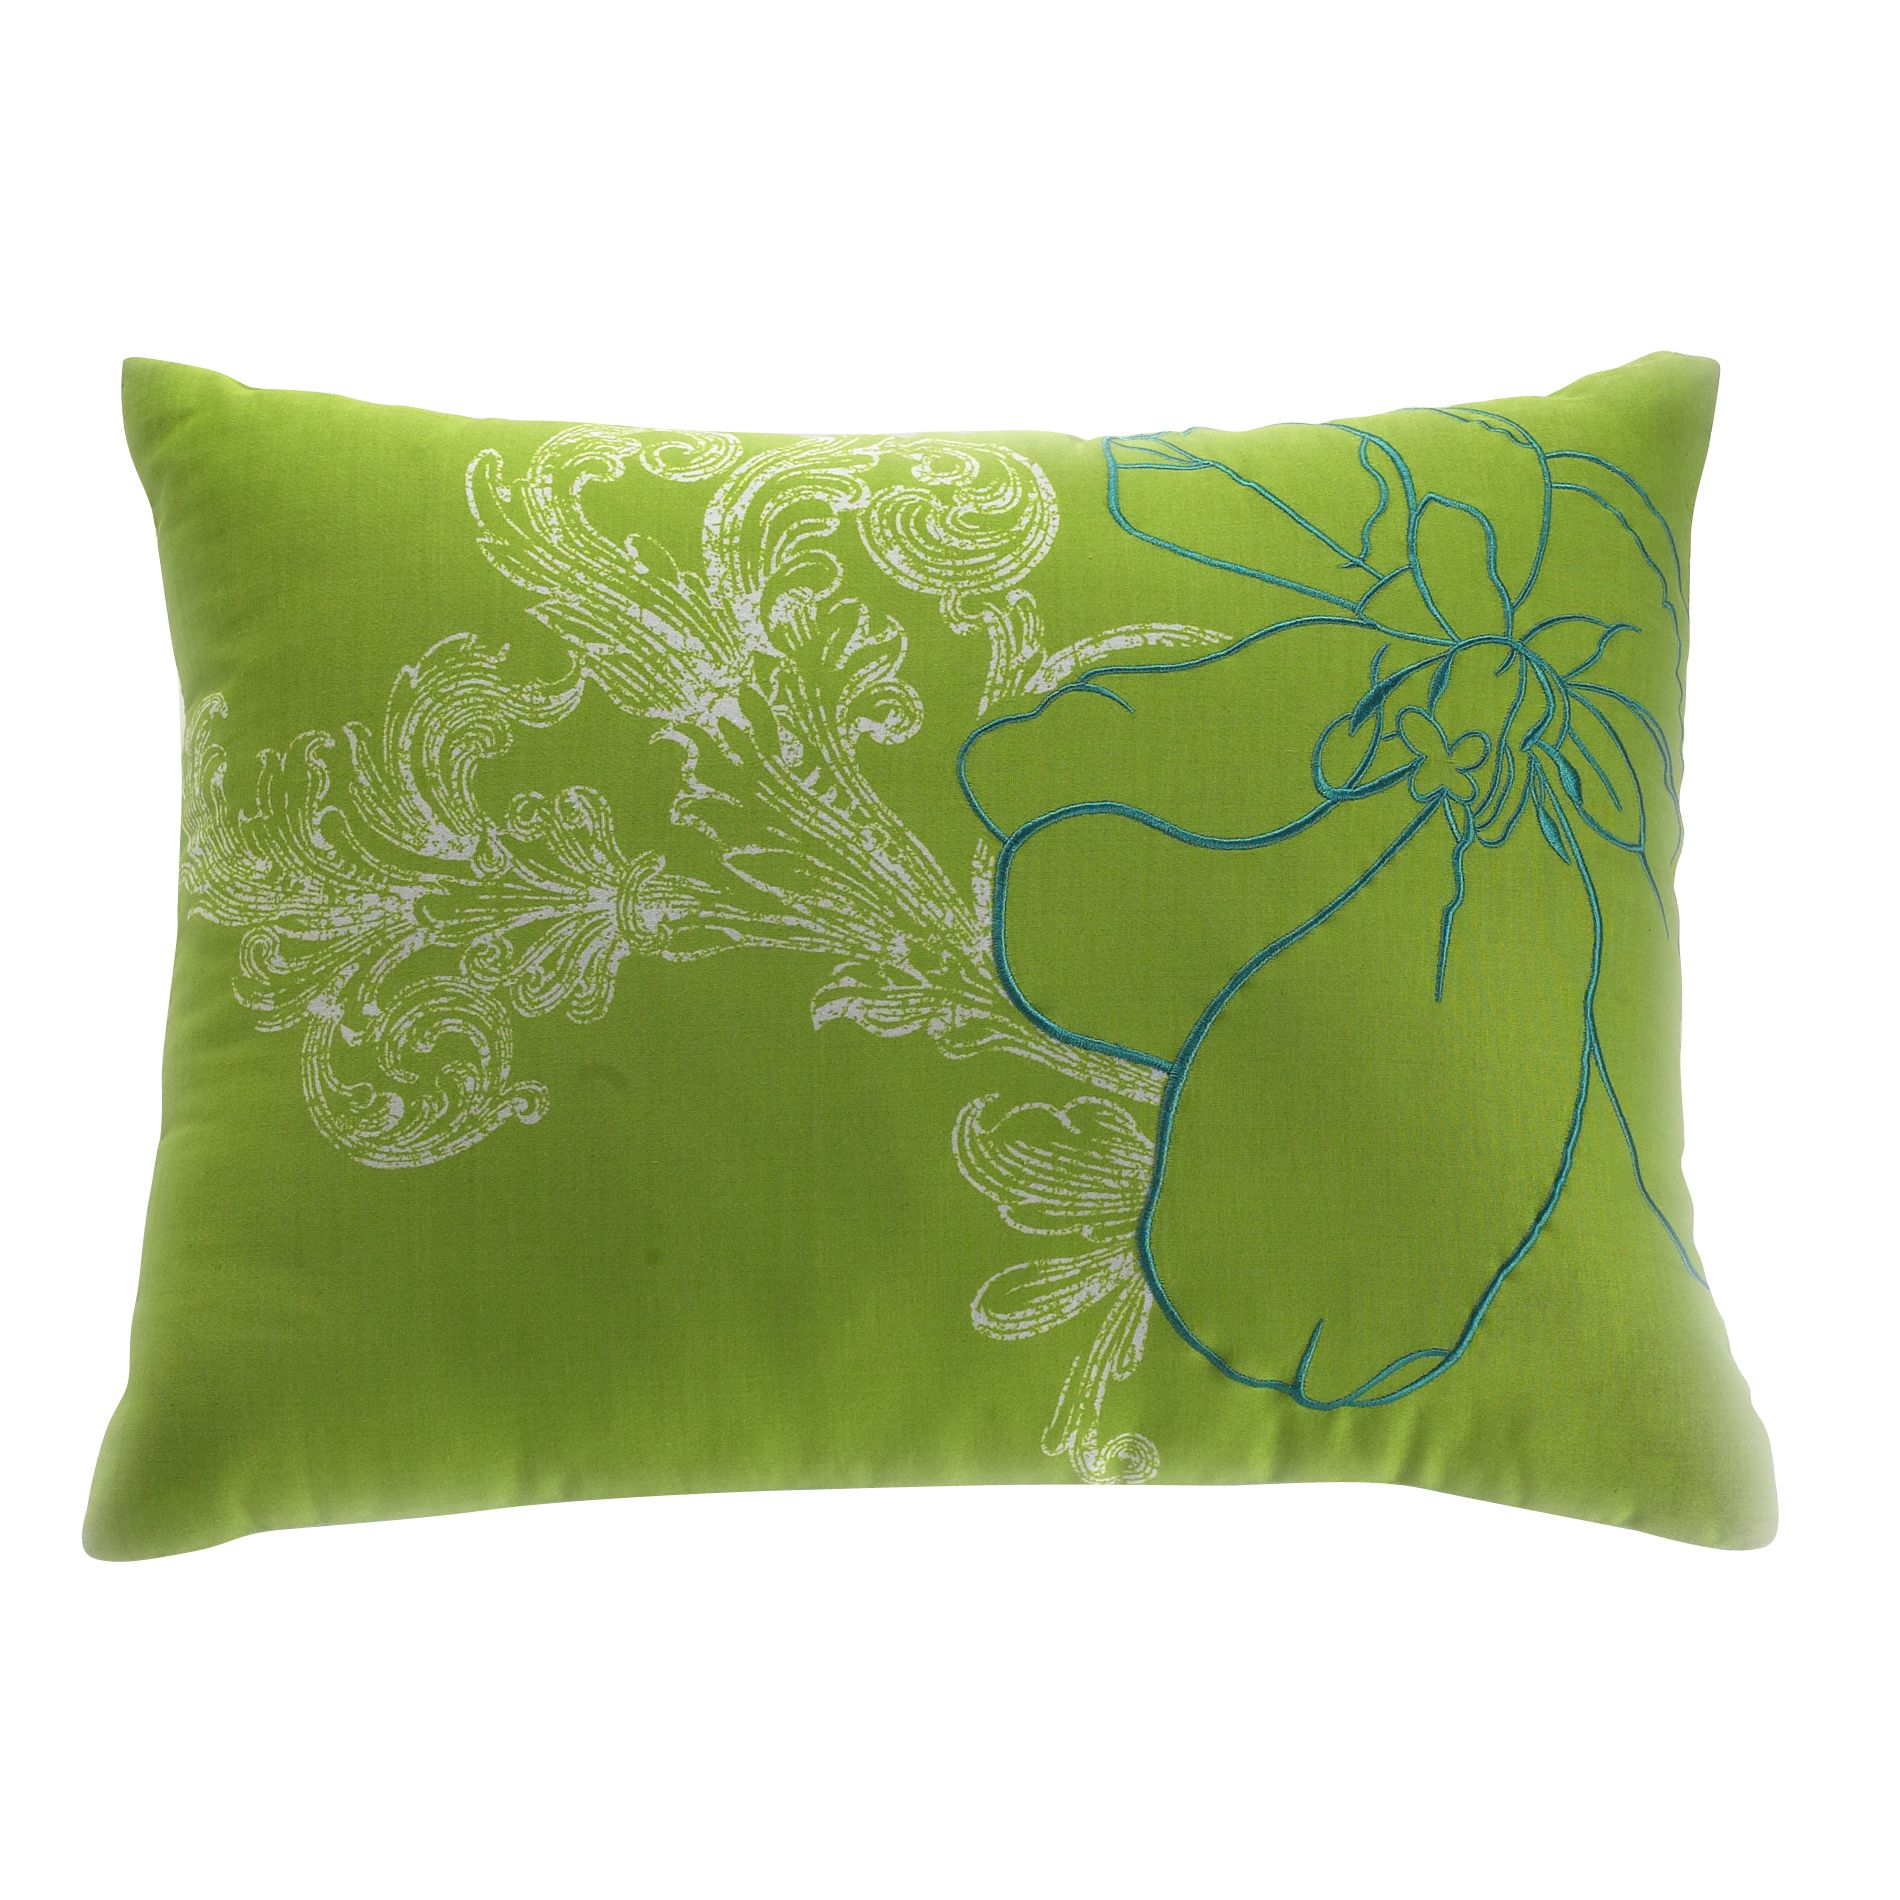 Abstract Floral Decorative Pillow 12X16